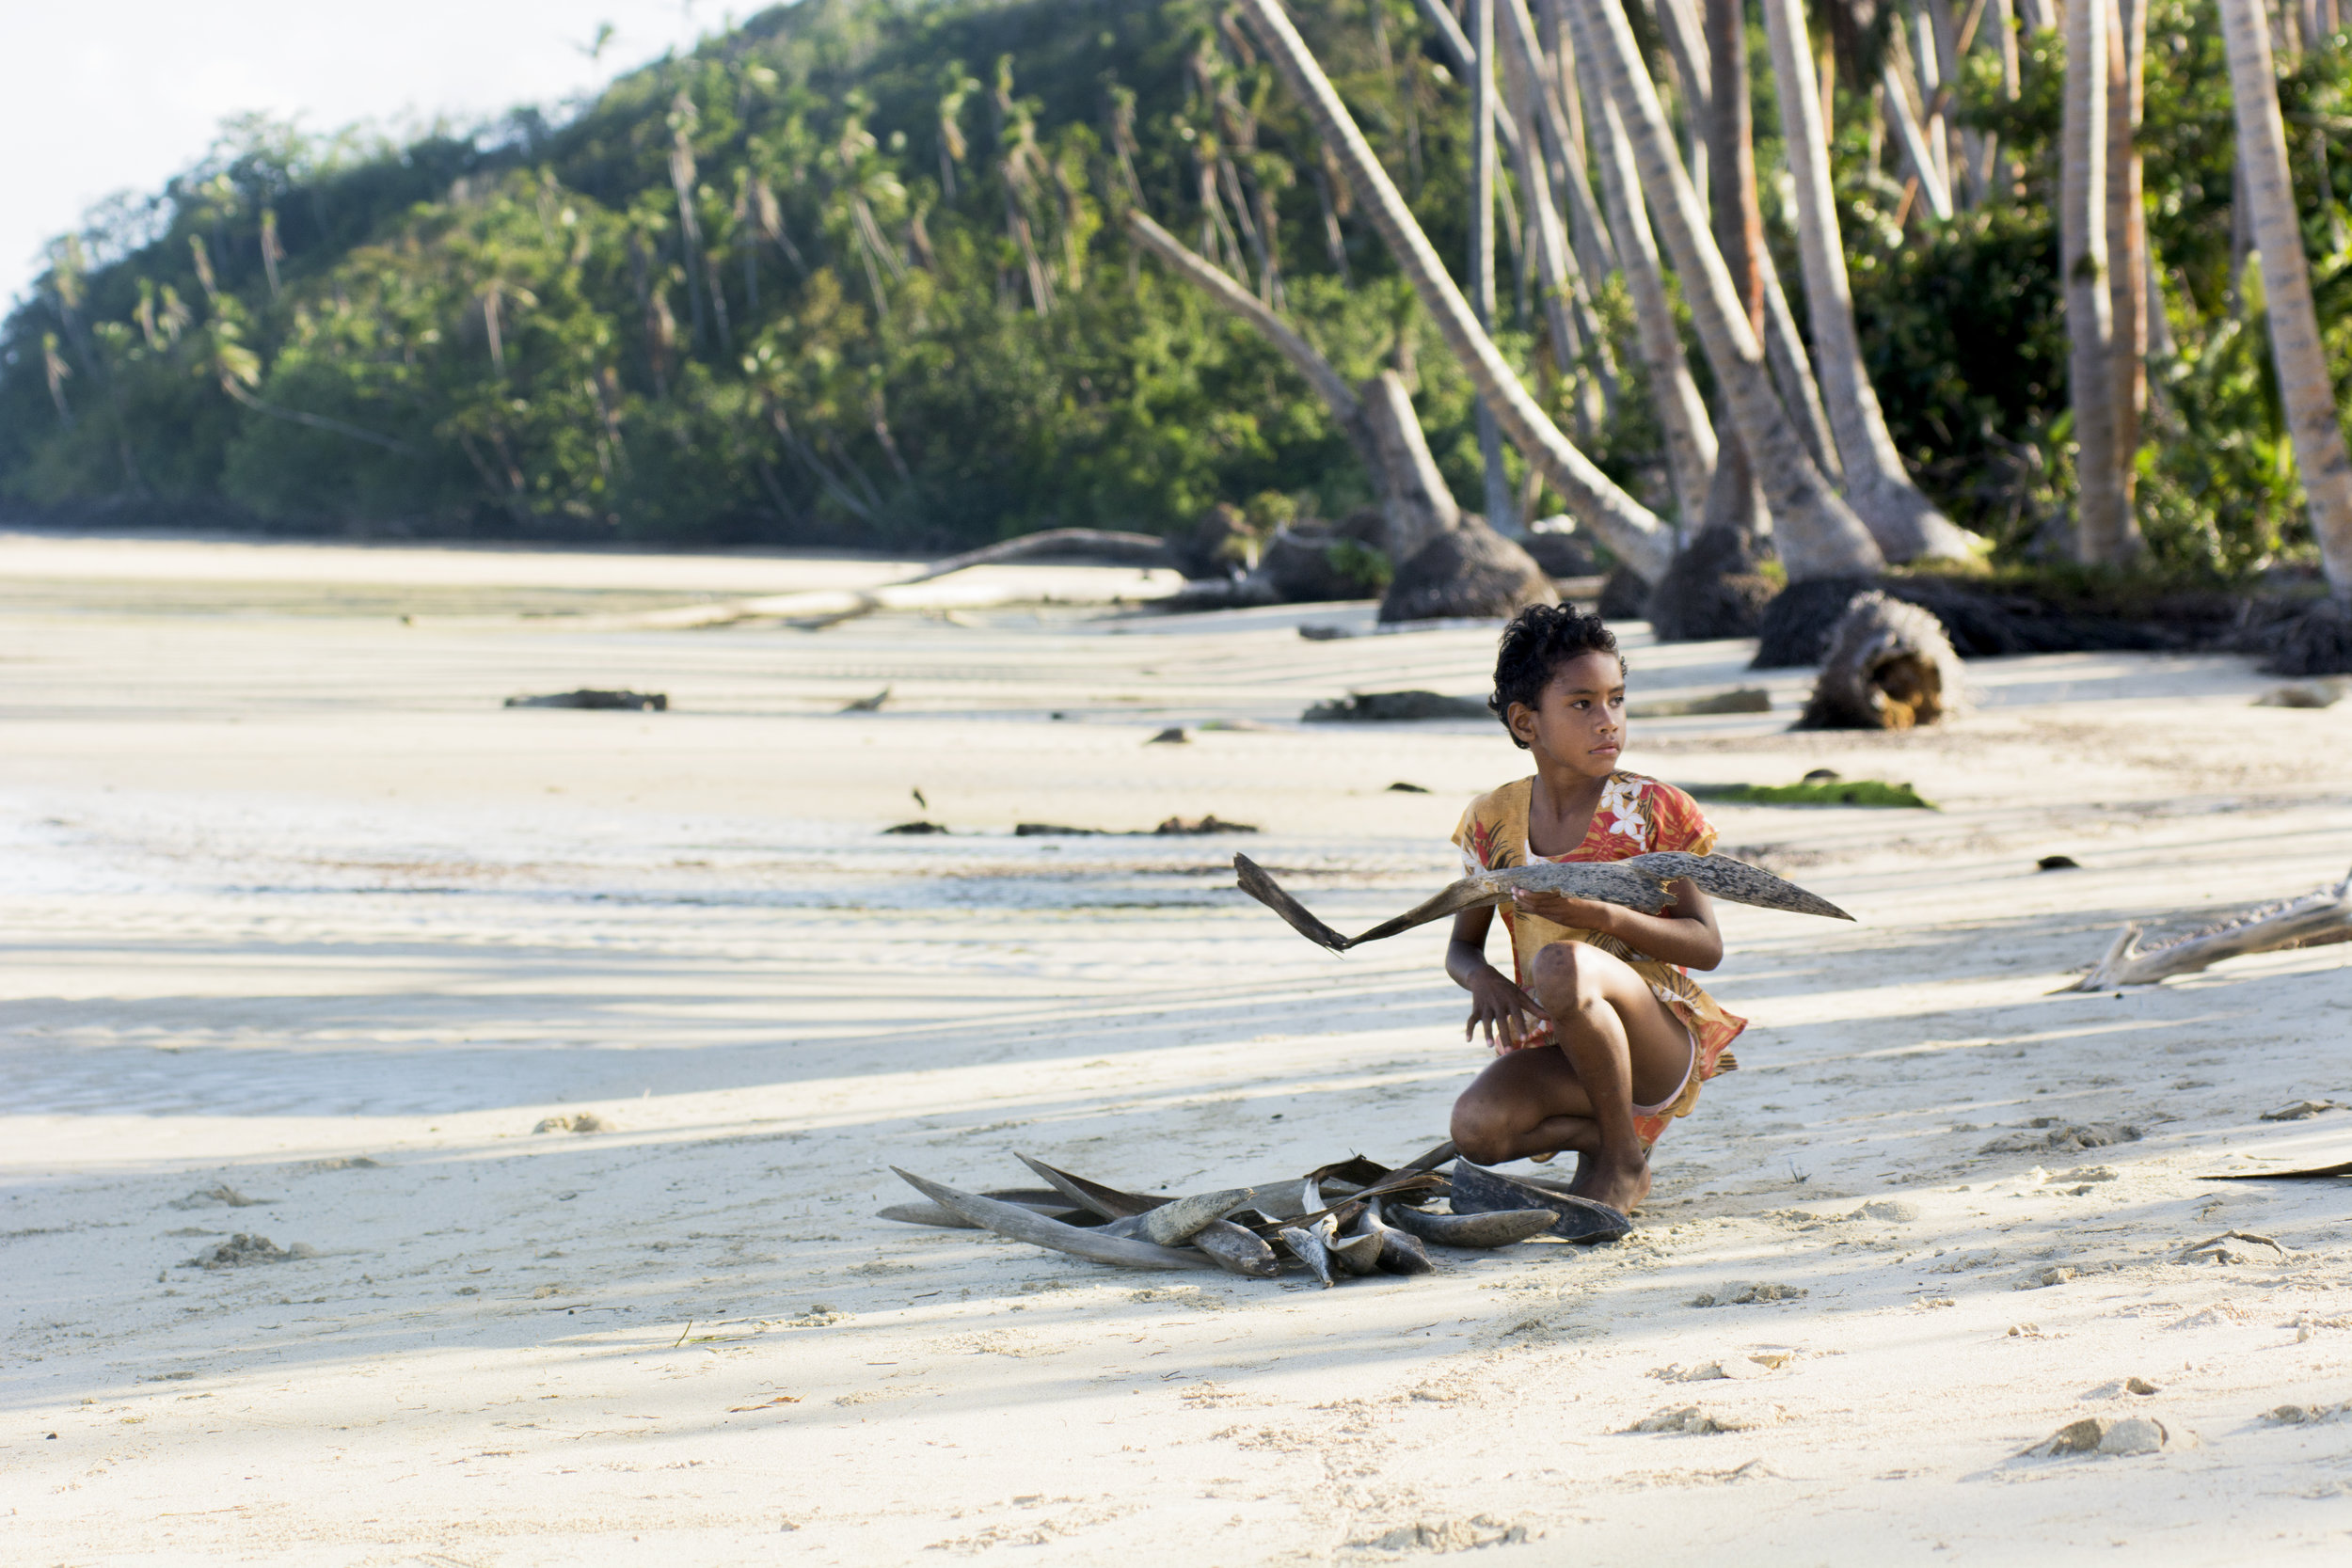 CLICK   for Fijian People  My time in Fiji was extremely special, I met some fantastic people and experienced amazing culture and traditions when spending time in villages and staying with families. The memories I will take with me forever.